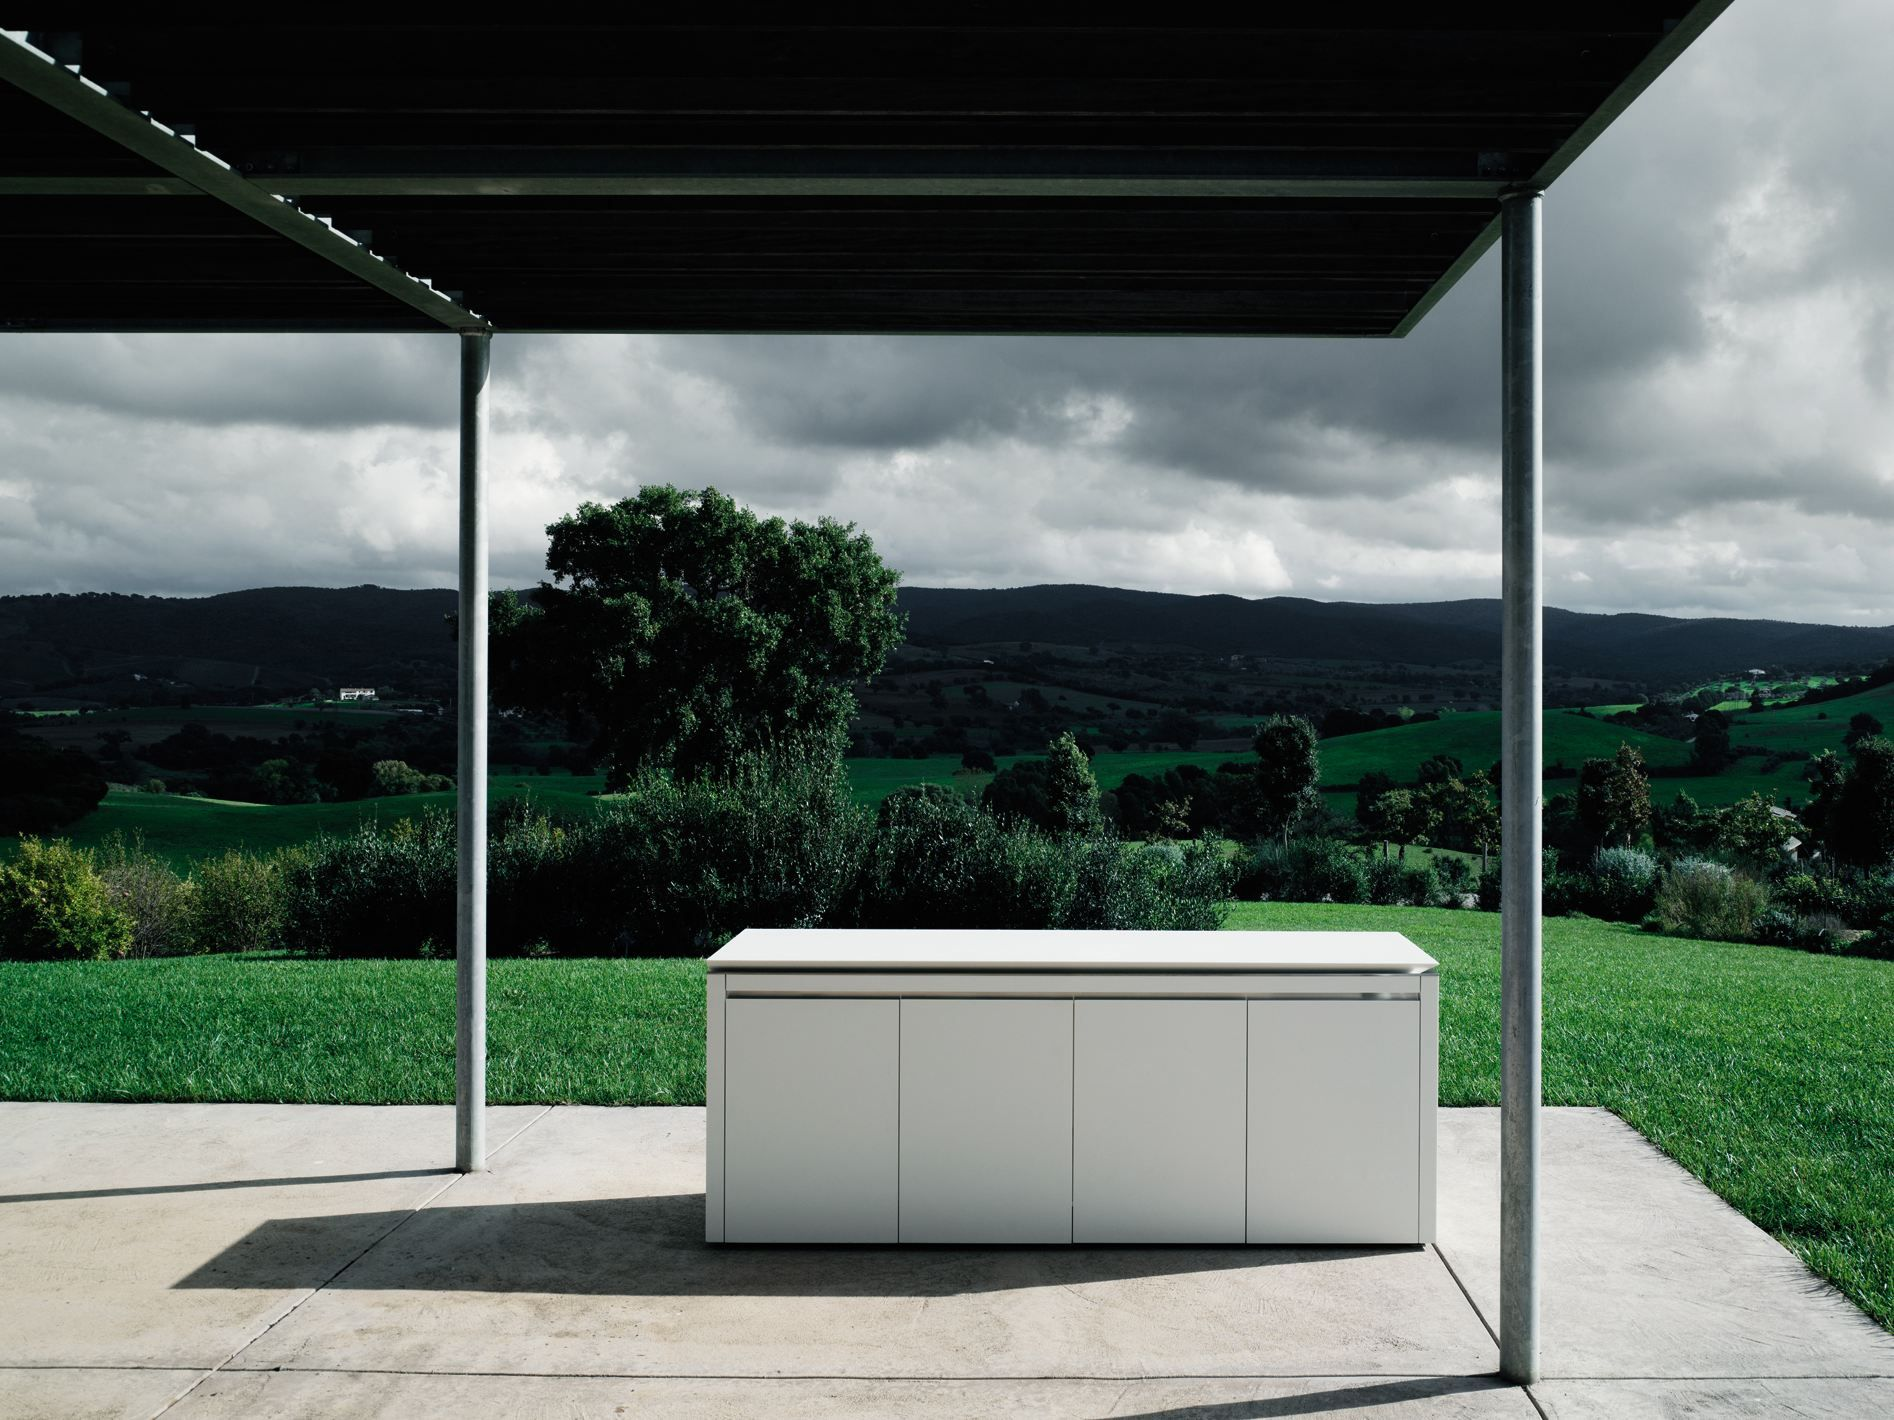 Outdoor Kitchens Sarasota Fl Corianar Outdoor Kitchen K2 Outdoor By Boffi Design Norbert